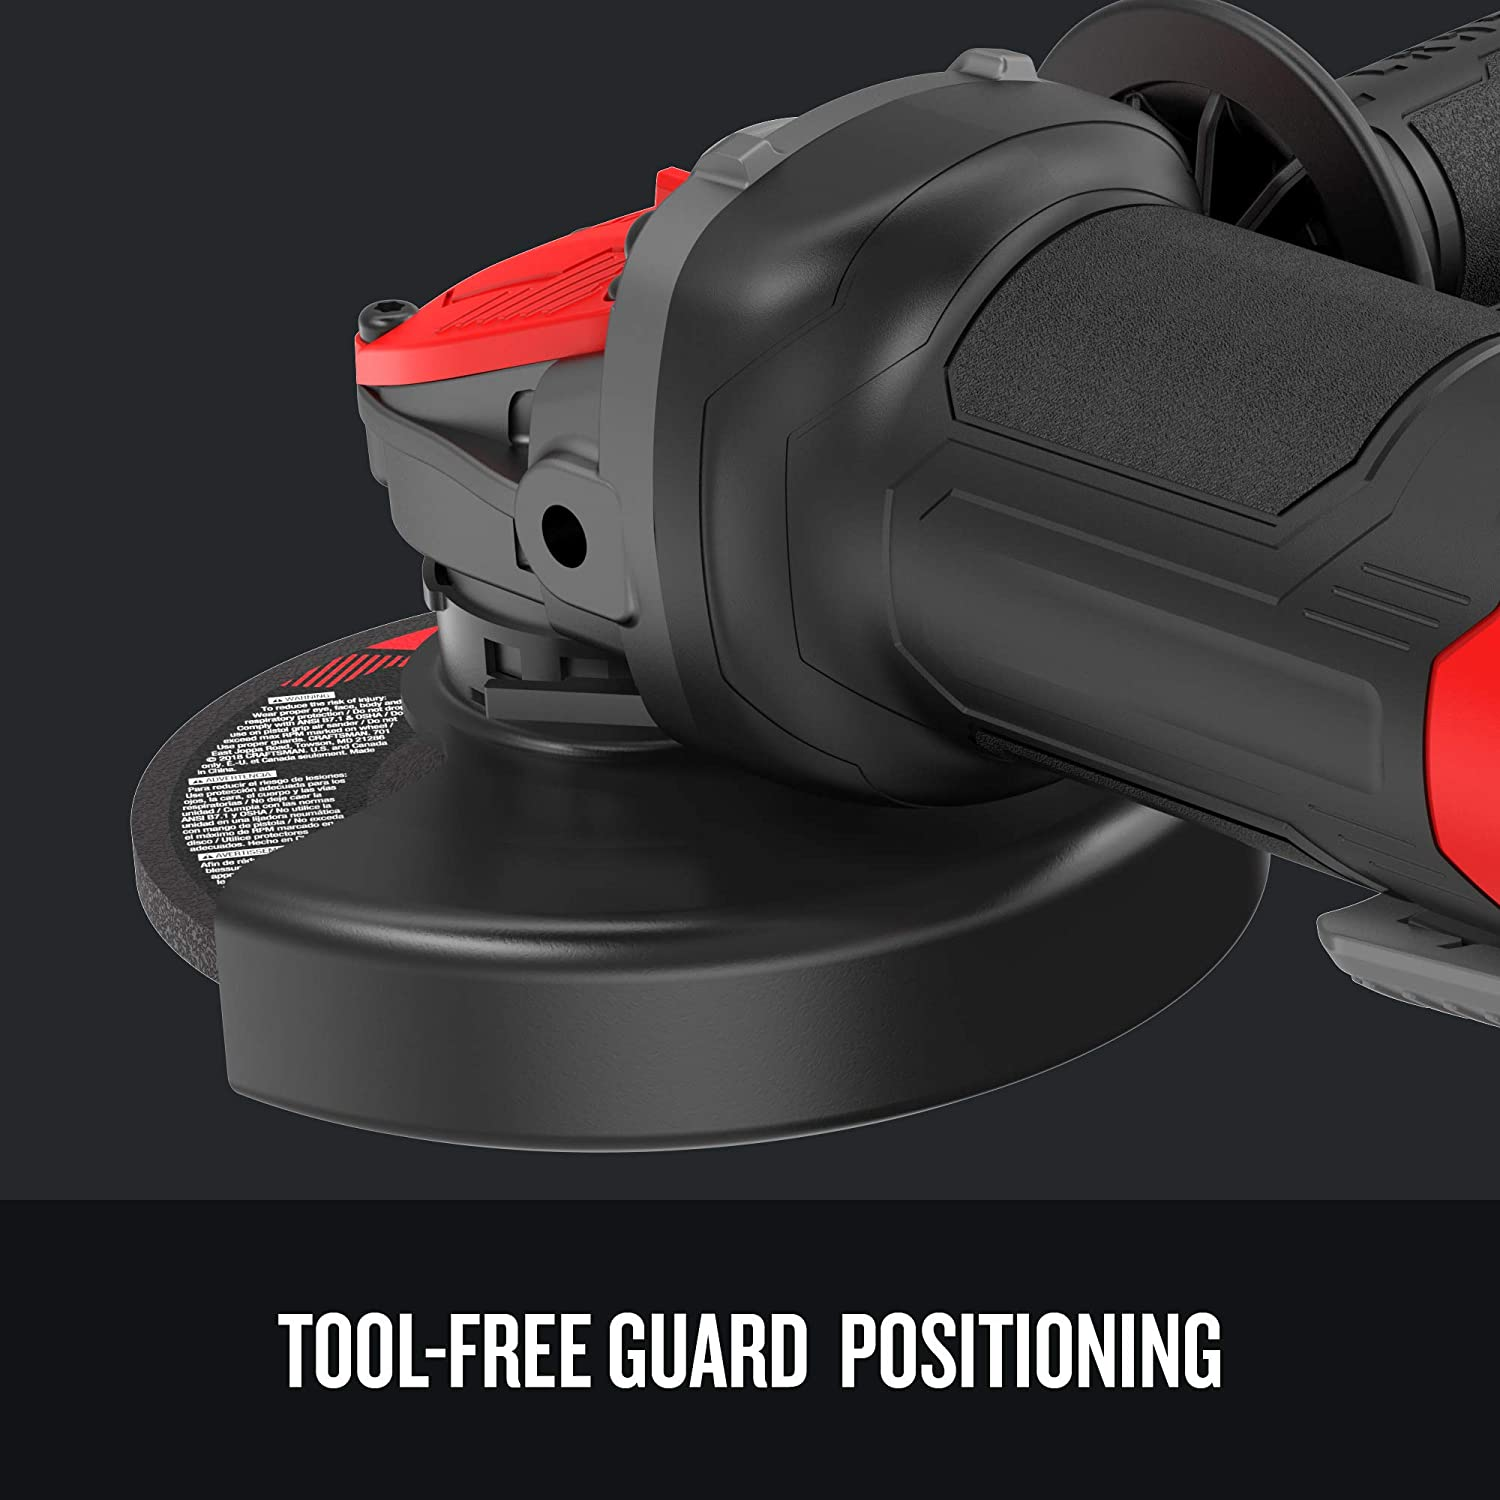 CRAFTSMAN CMEG200 4.5IN 7.5AMP SMALL ANGLE GRINDER